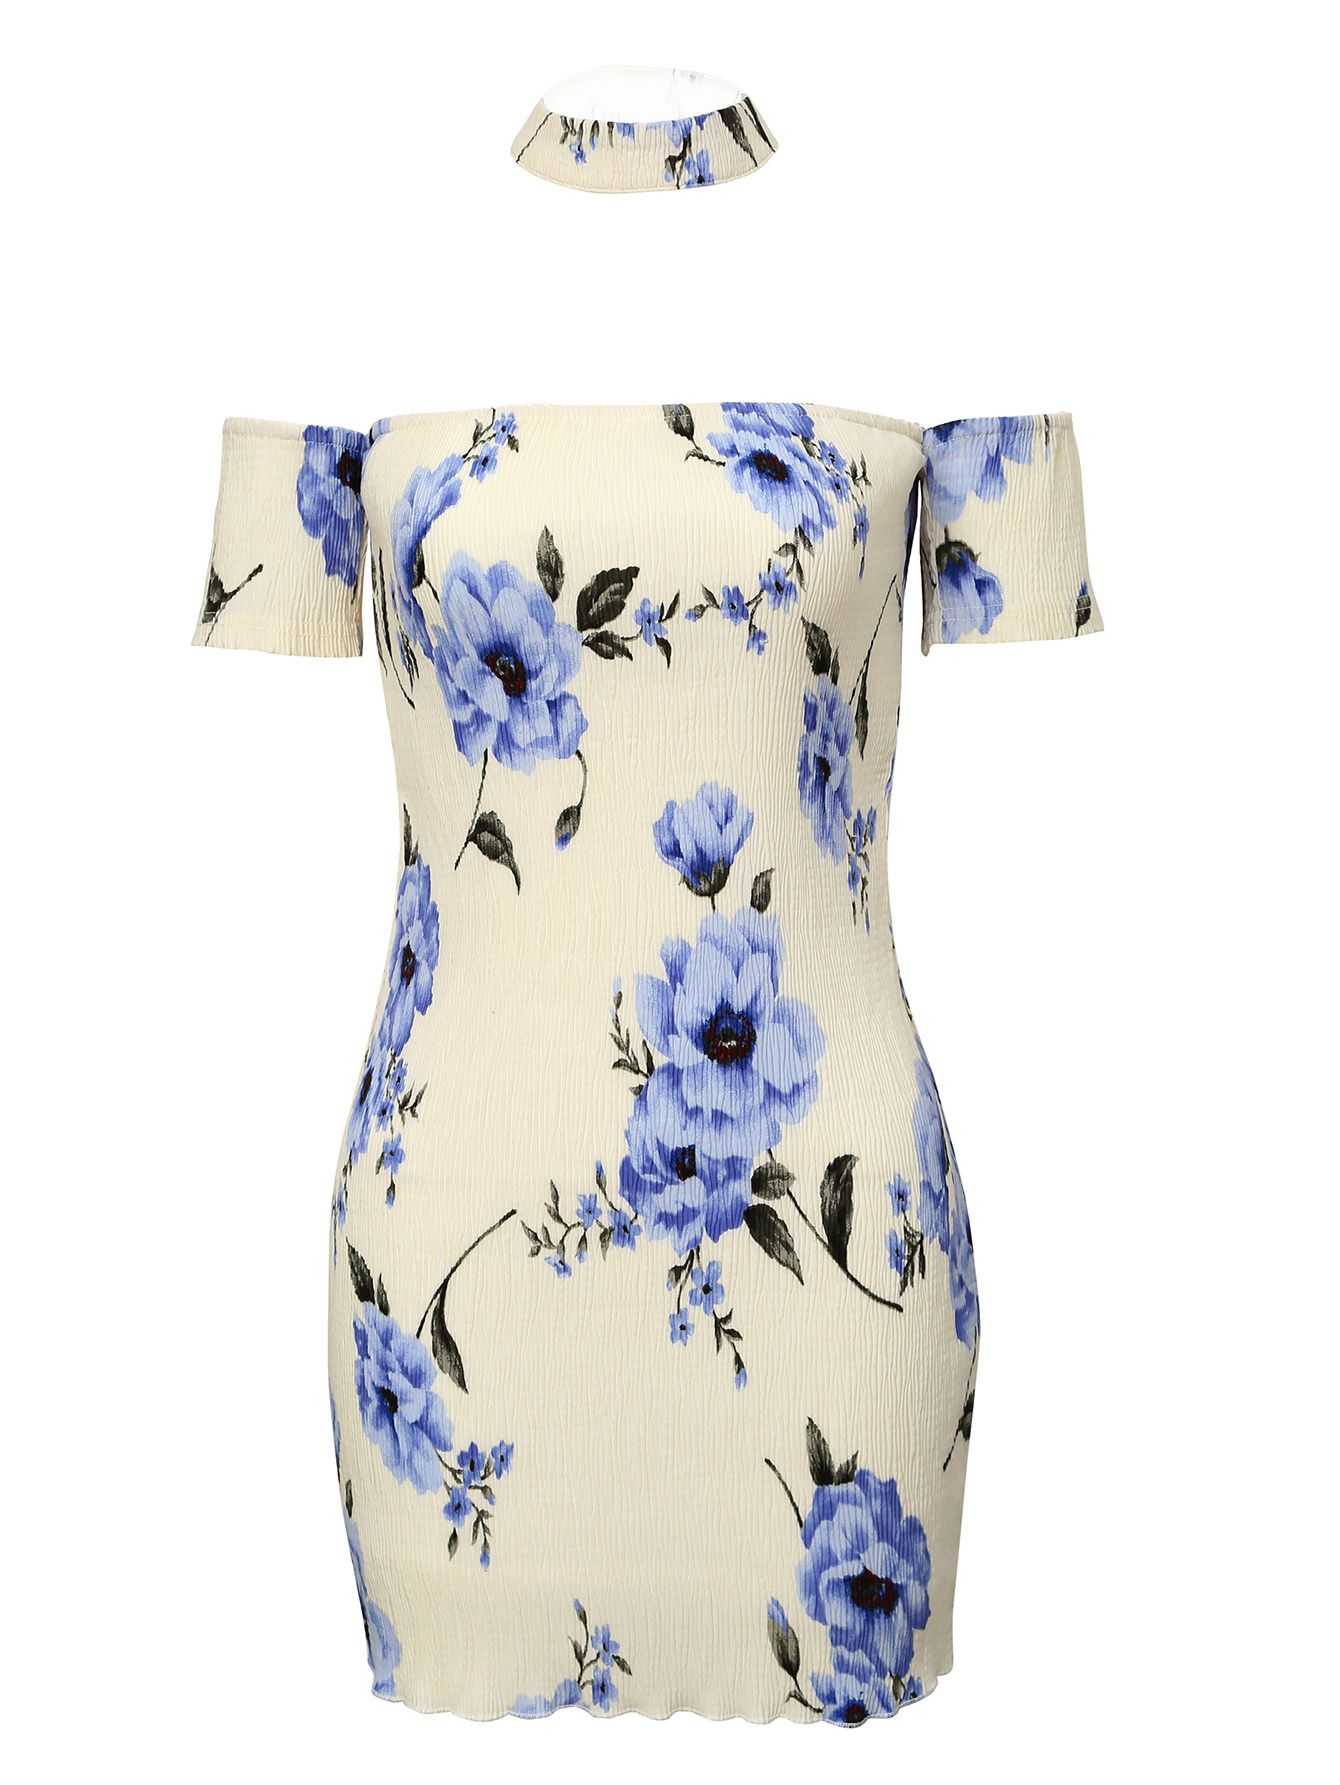 Shop blue and white off the shoulder floral dress online shein shop blue and white off the shoulder floral dress online shein offers blue and white izmirmasajfo